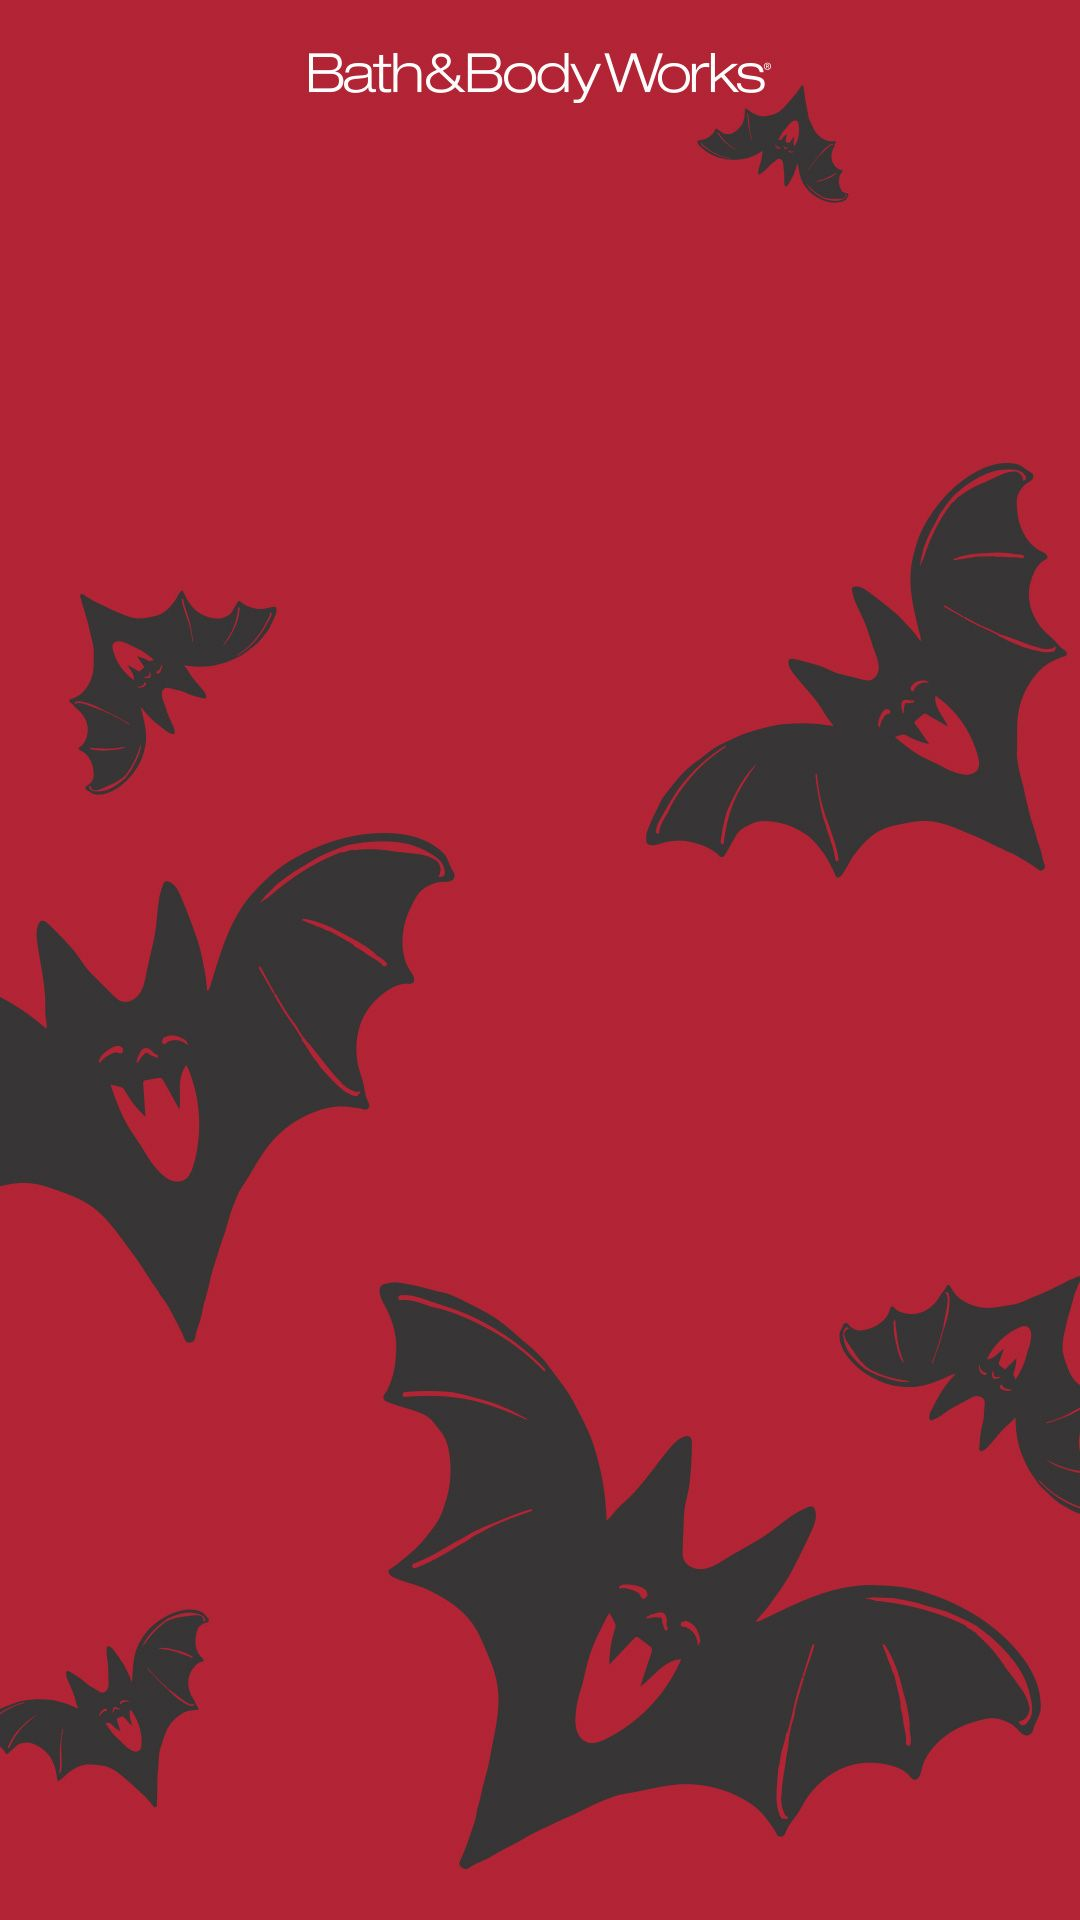 Vampire Bats Halloween Iphone Wallpaper Halloween Wallpaper Victoria Secret Pink Wallpaper Holiday Wallpaper